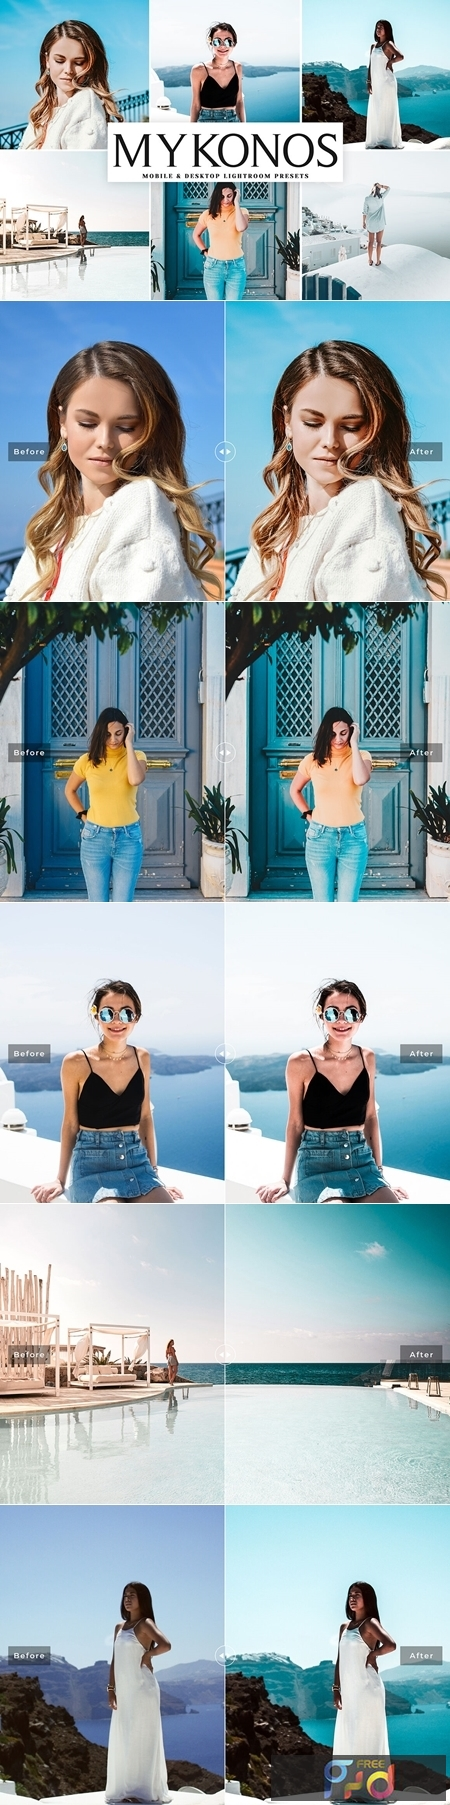 Mykonos Mobile & Desktop Lightroom Presets 3607646 1